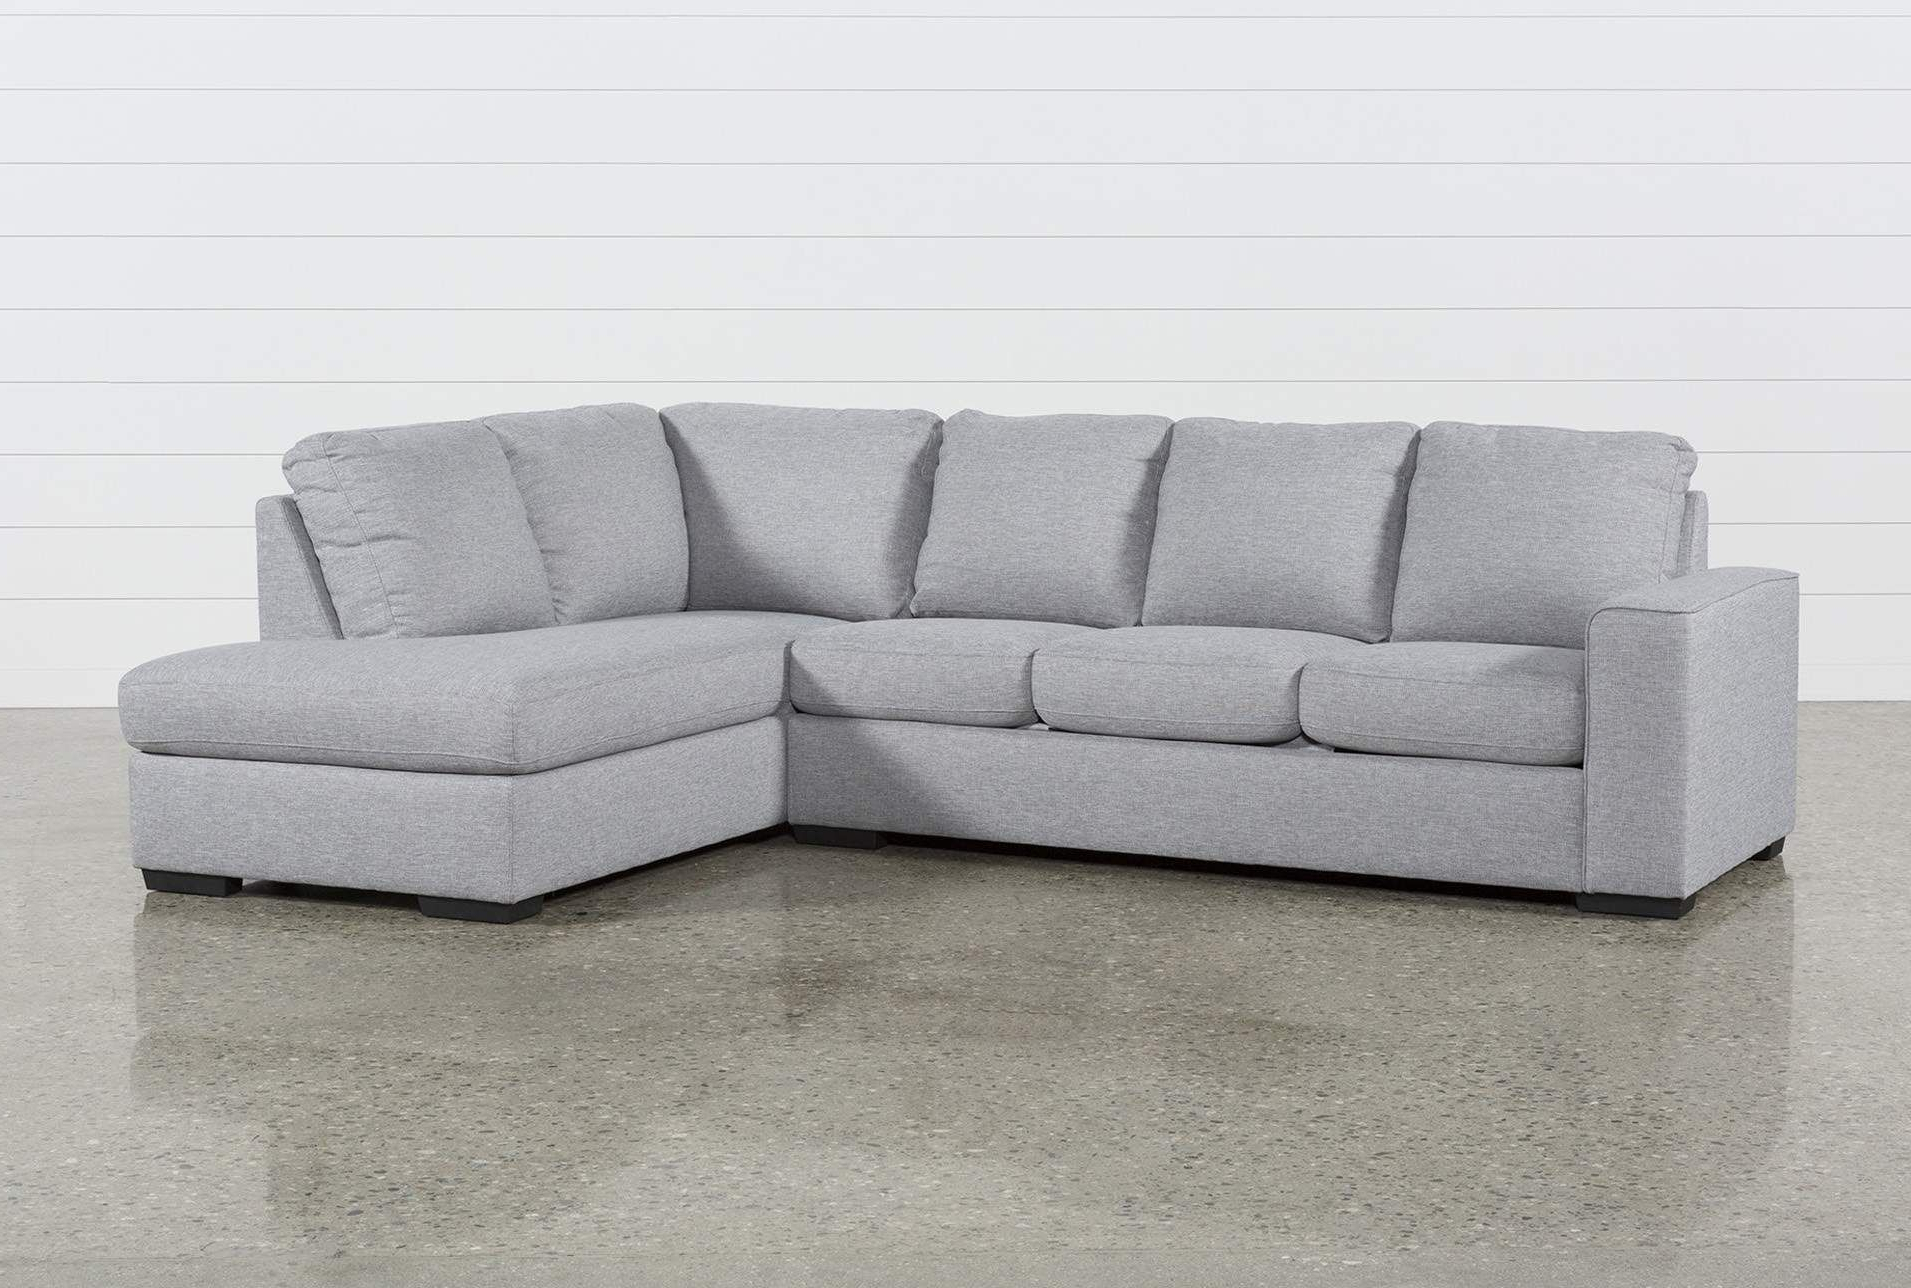 2018 Lucy Grey 2 Piece Sectional Sofa With Right Arm Facing Pertaining To Monet Right Facing Sectional Sofas (View 15 of 25)